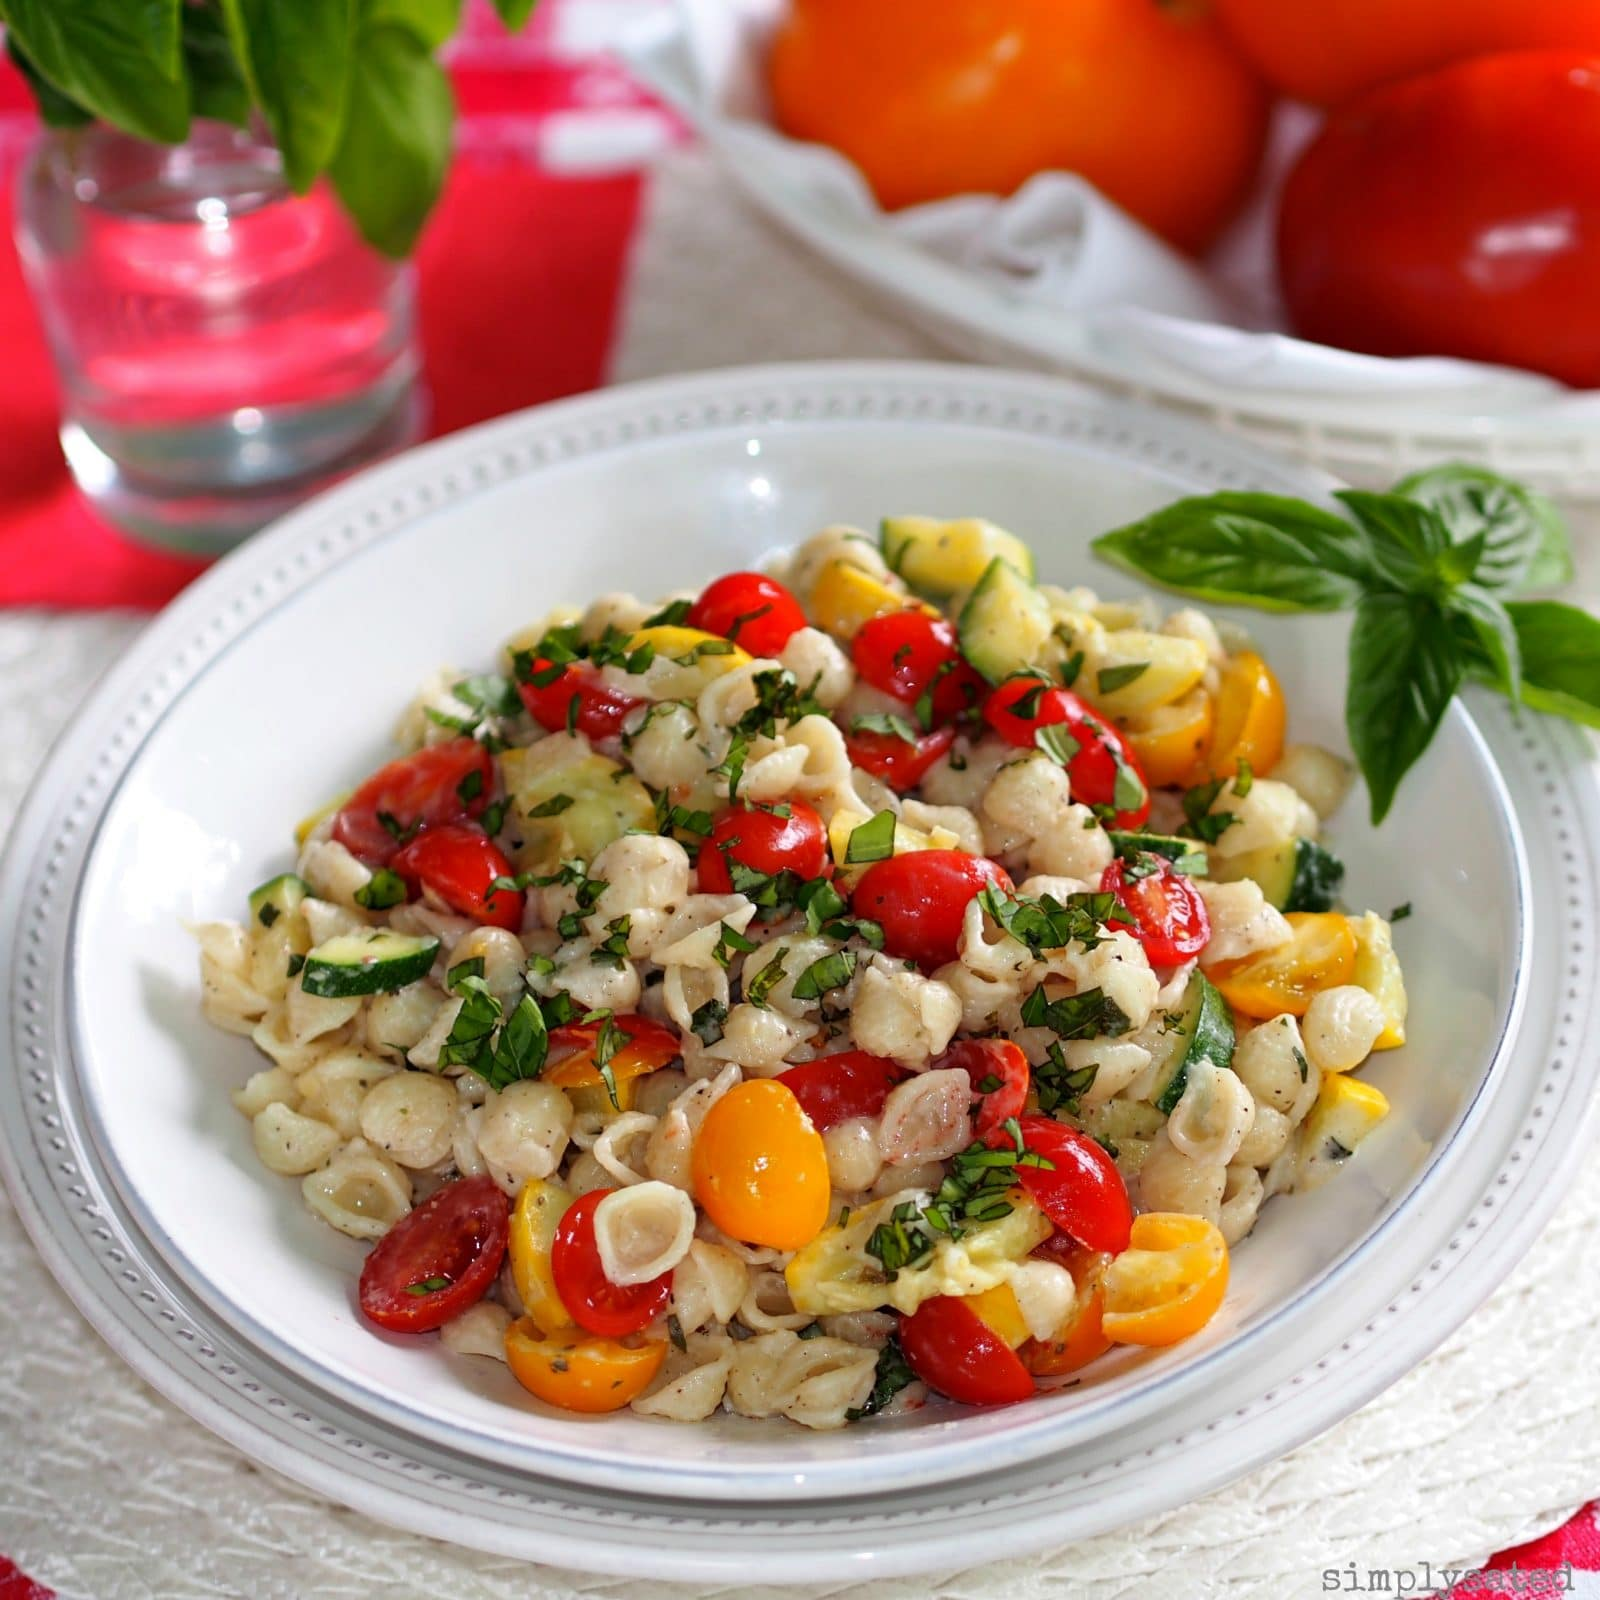 Summer Pasta Salad with Boursin is a flavor-packed pasta salad including zucchini, yellow squash, tomatoes, basil and Boursin cheese. Make for a whole meal or a side.